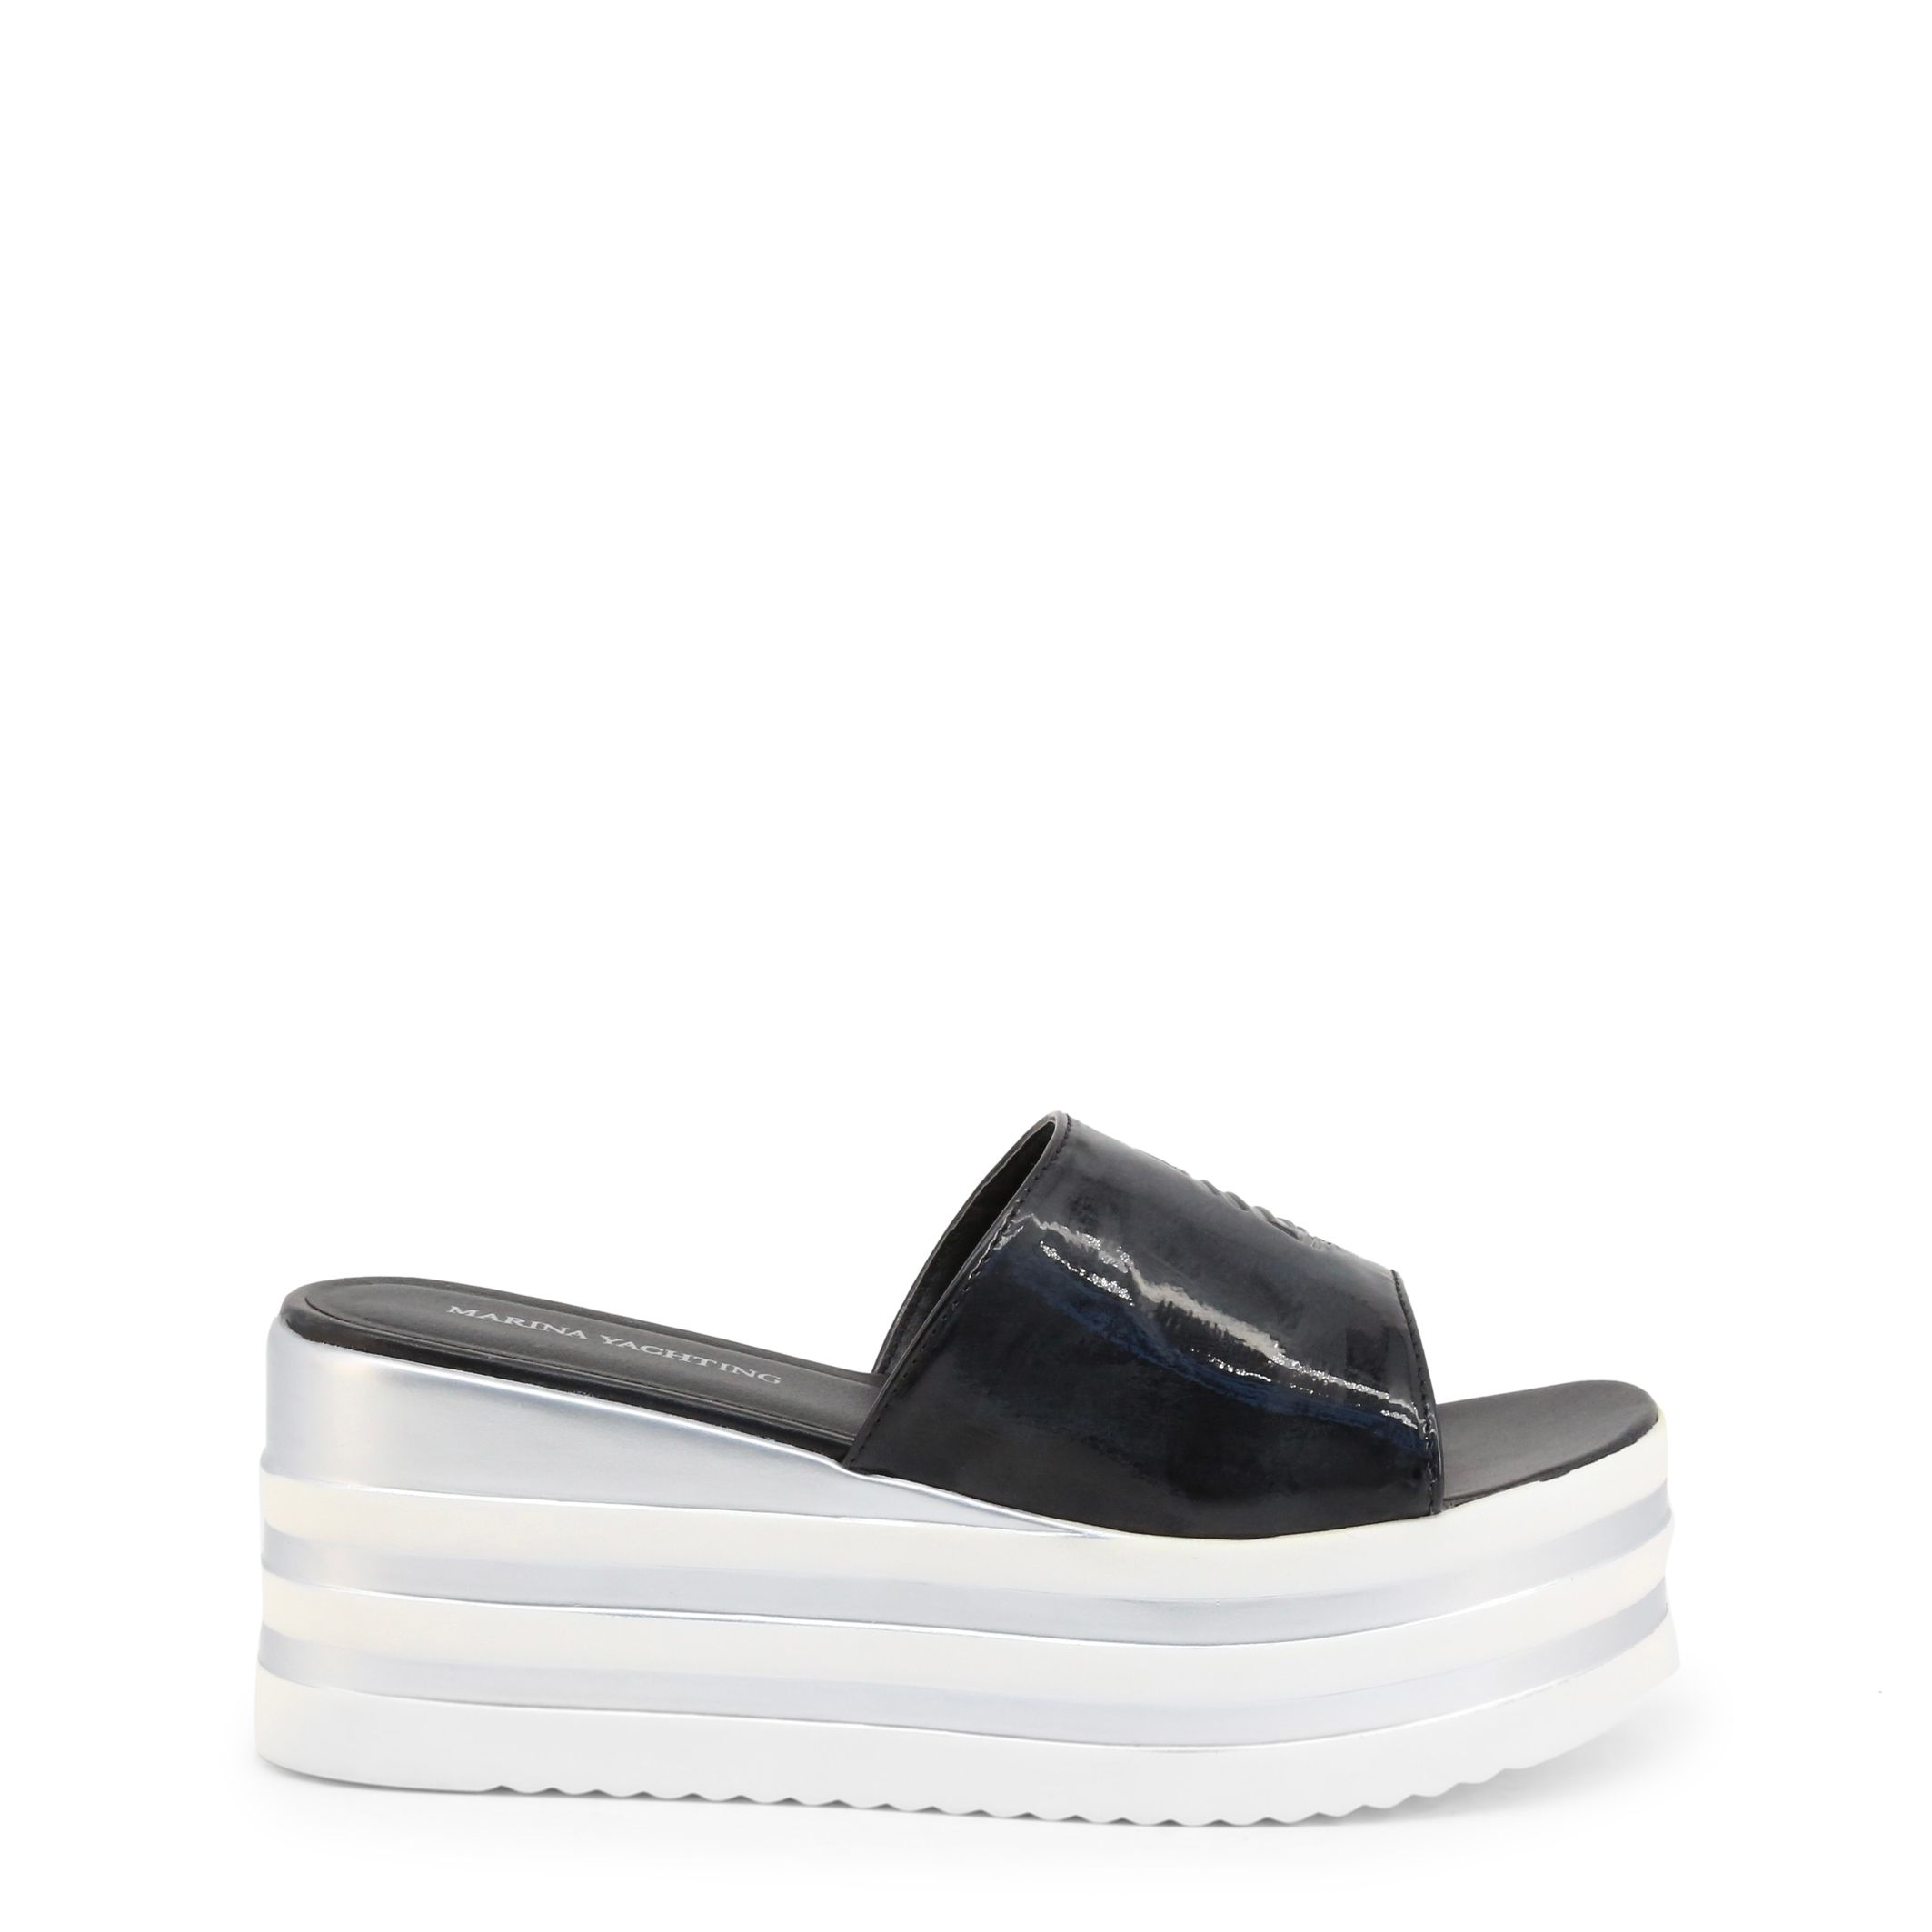 Marina Yachting - MANILLE181W6121400 | You Fashion Outlet